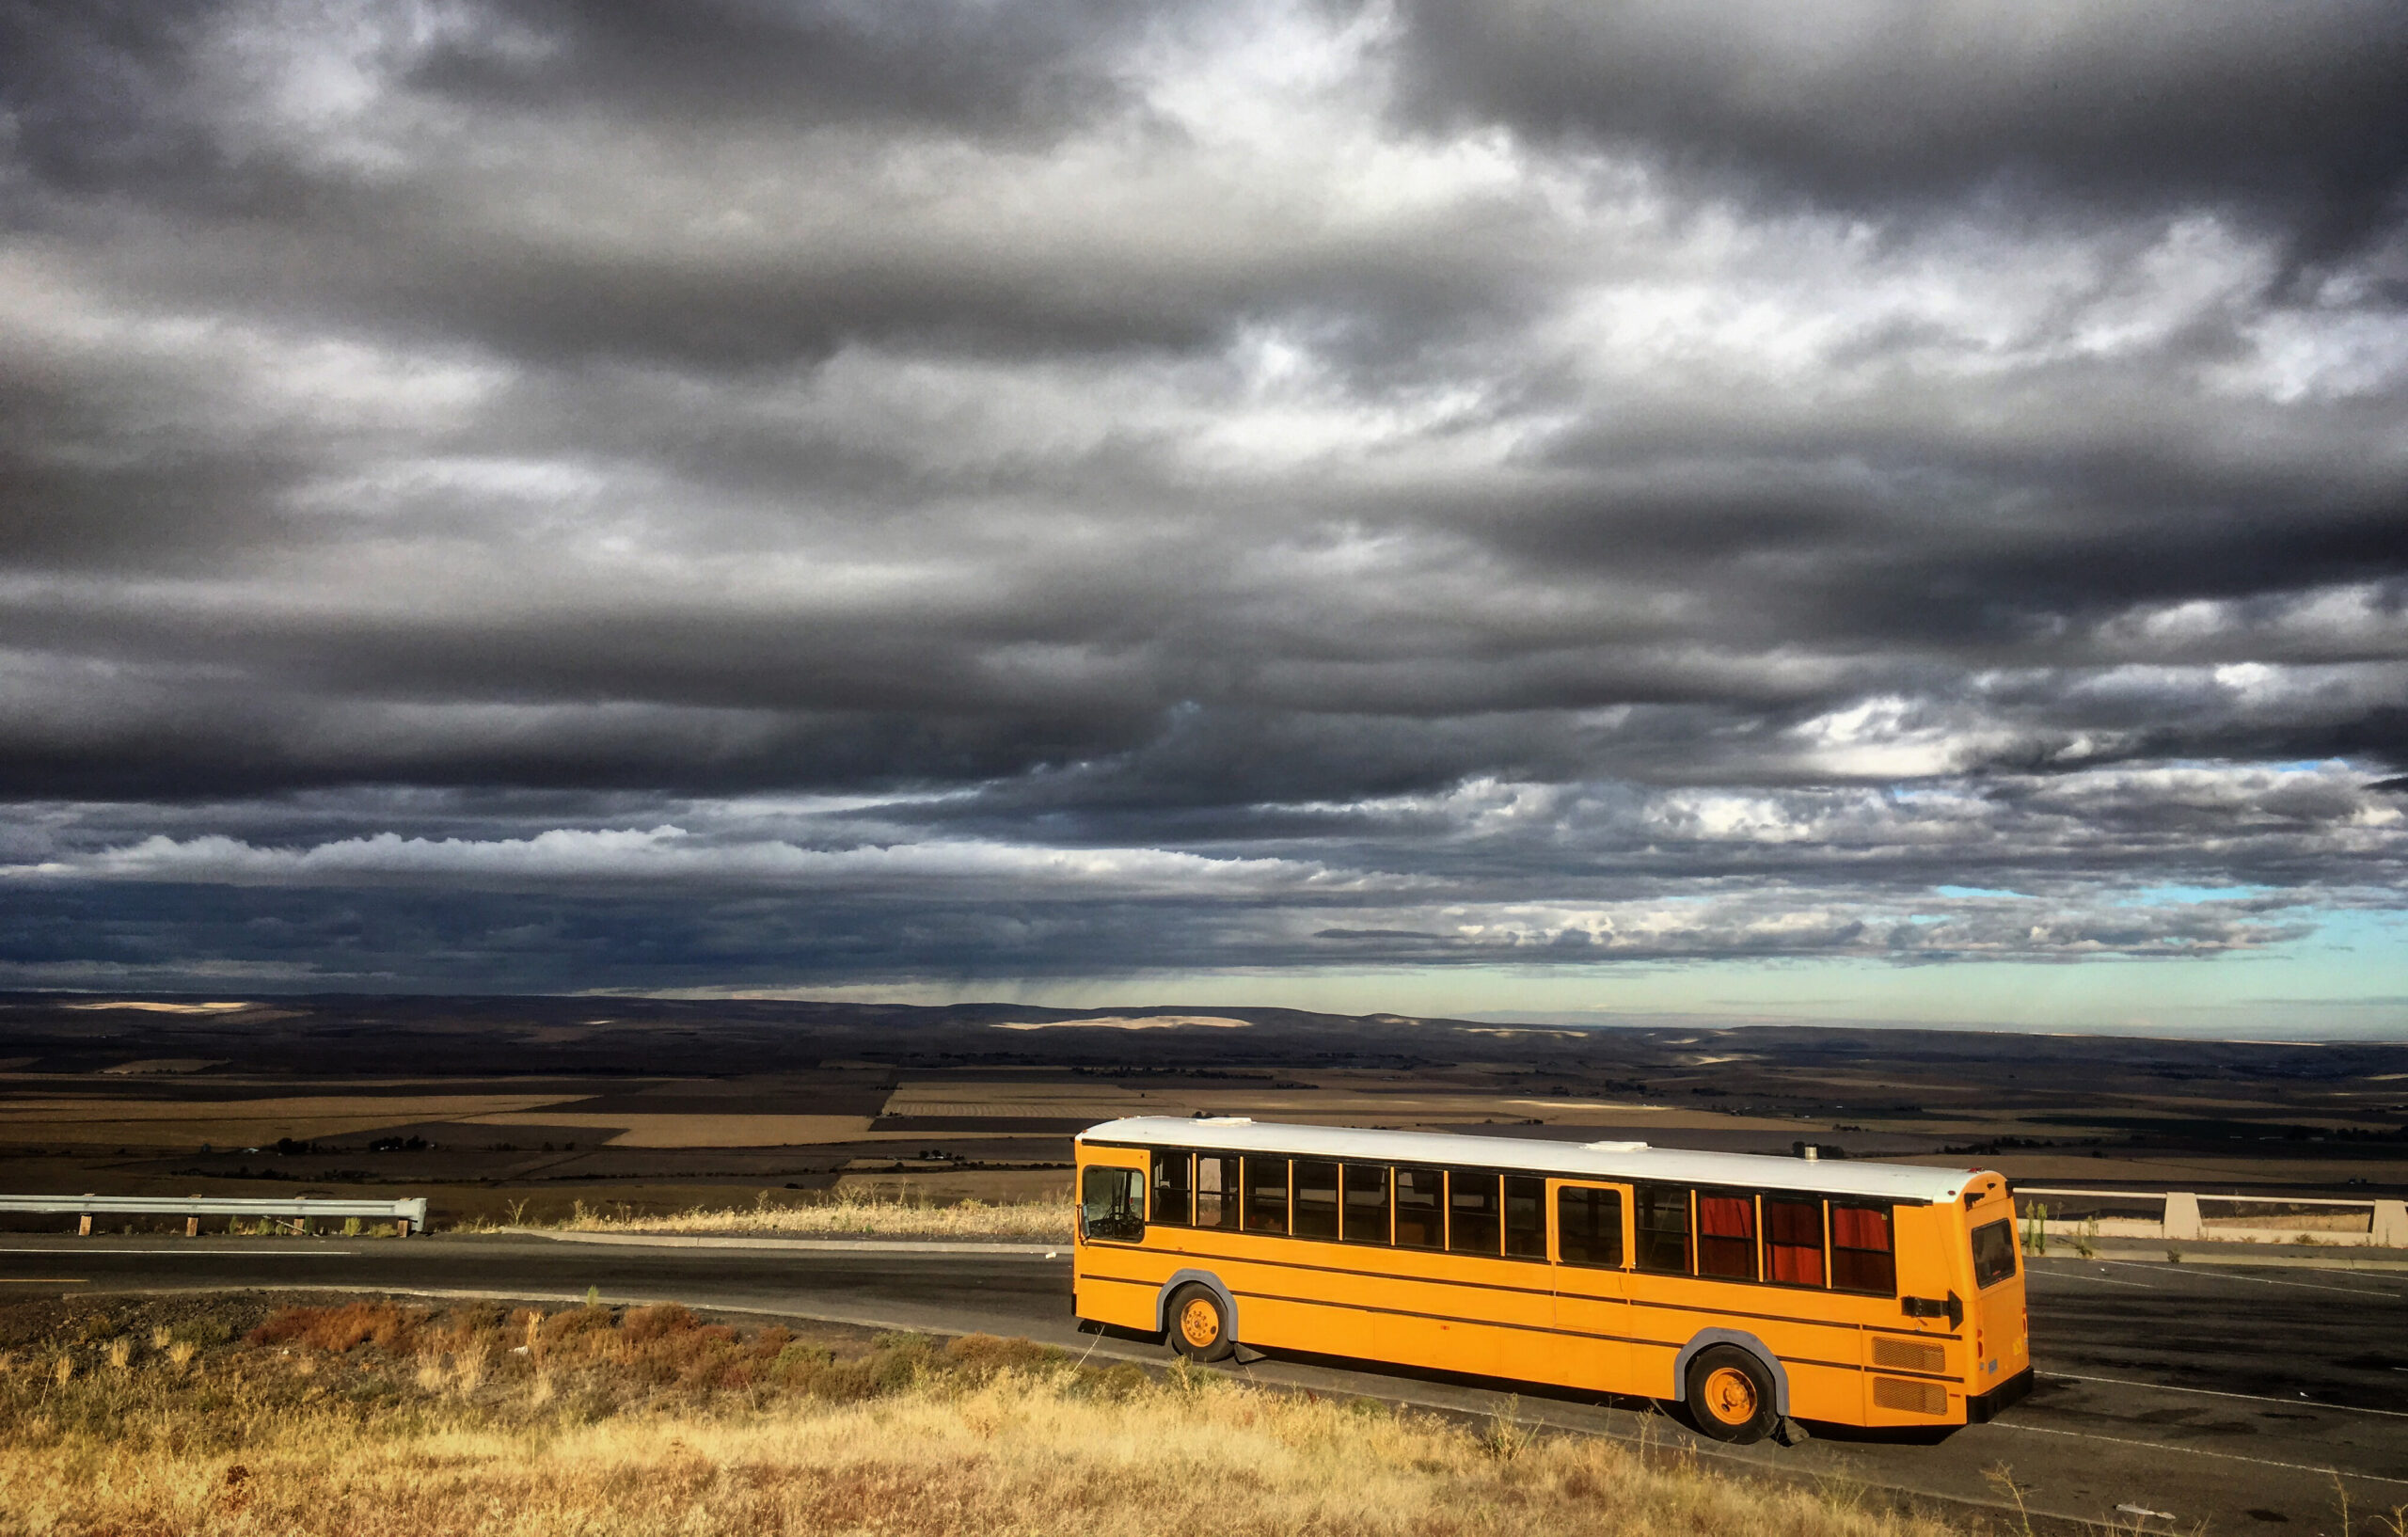 School Bus Camper in front of stormy clouds